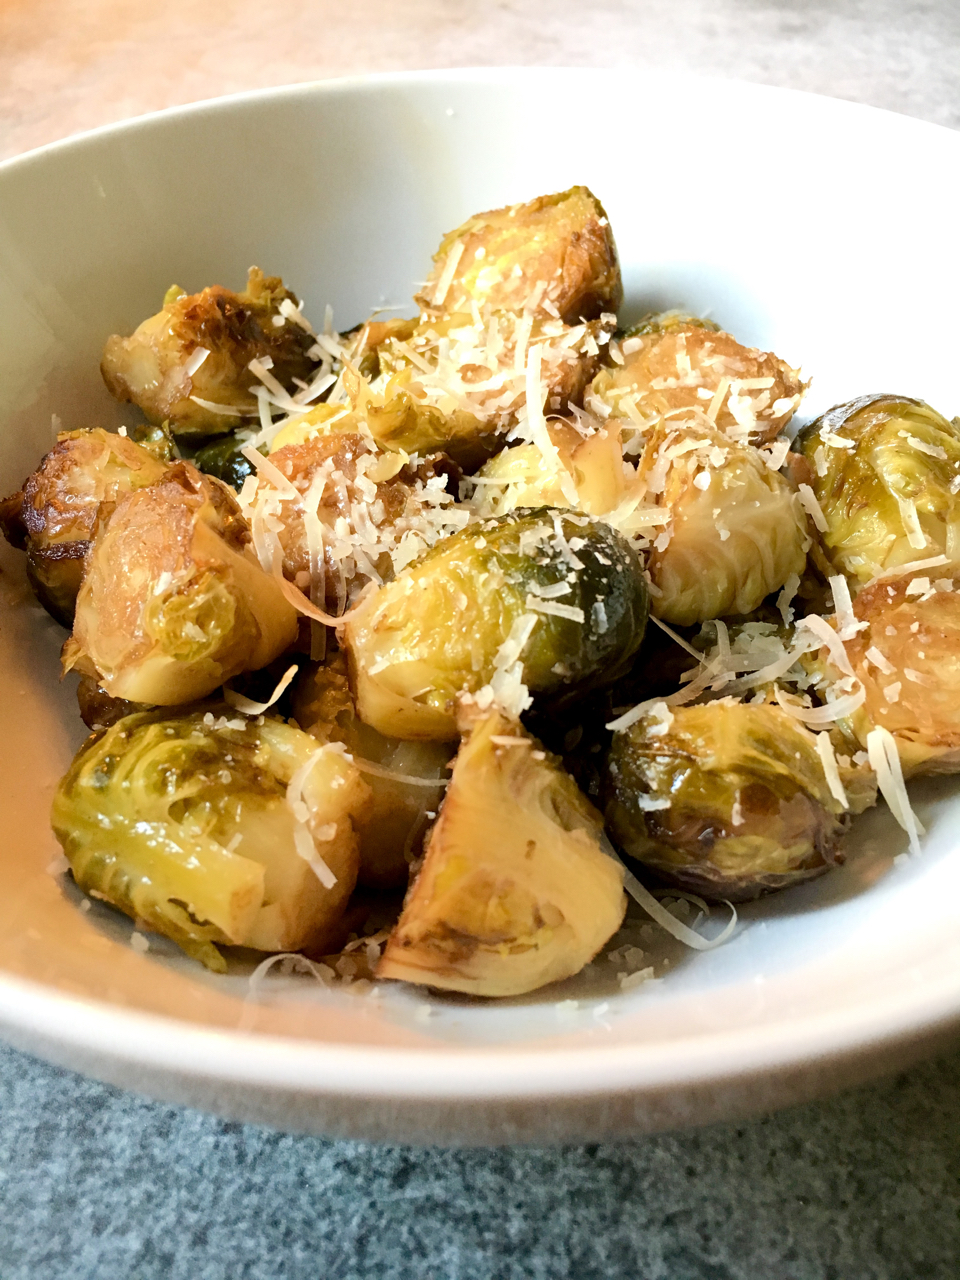 Roasted Brussels Sprouts With Balsamic Vinegar and Parmesan Cheese